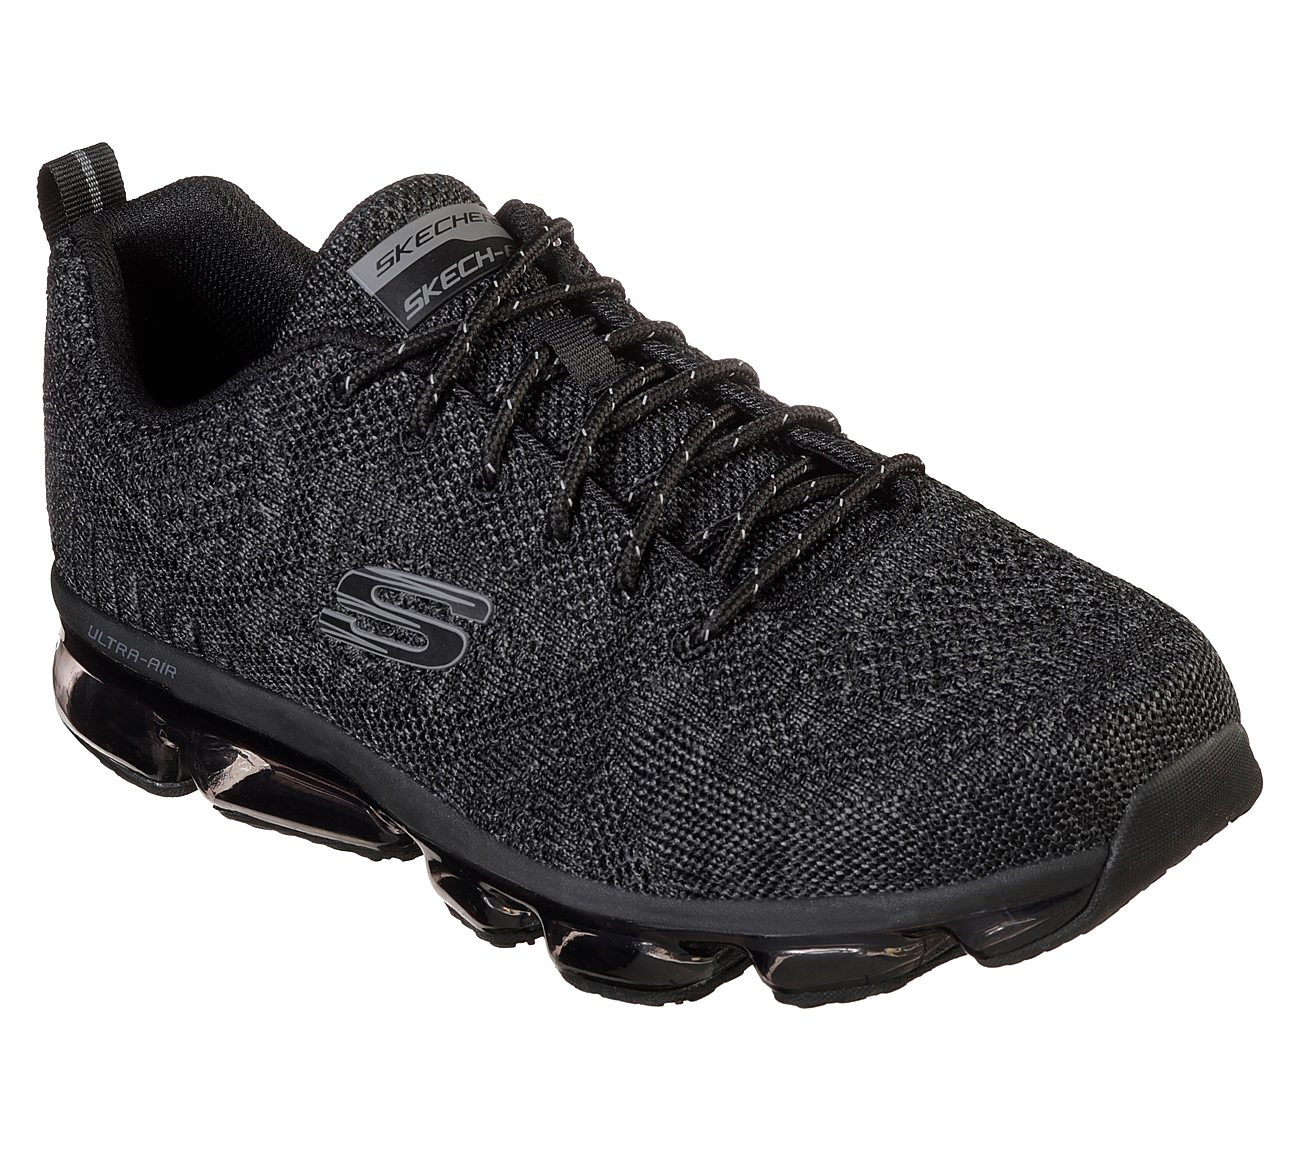 721dcb32bd34 Buy SKECHERS Skech-Air Atlas - Dracton Skech-Air Shoes only  80.00